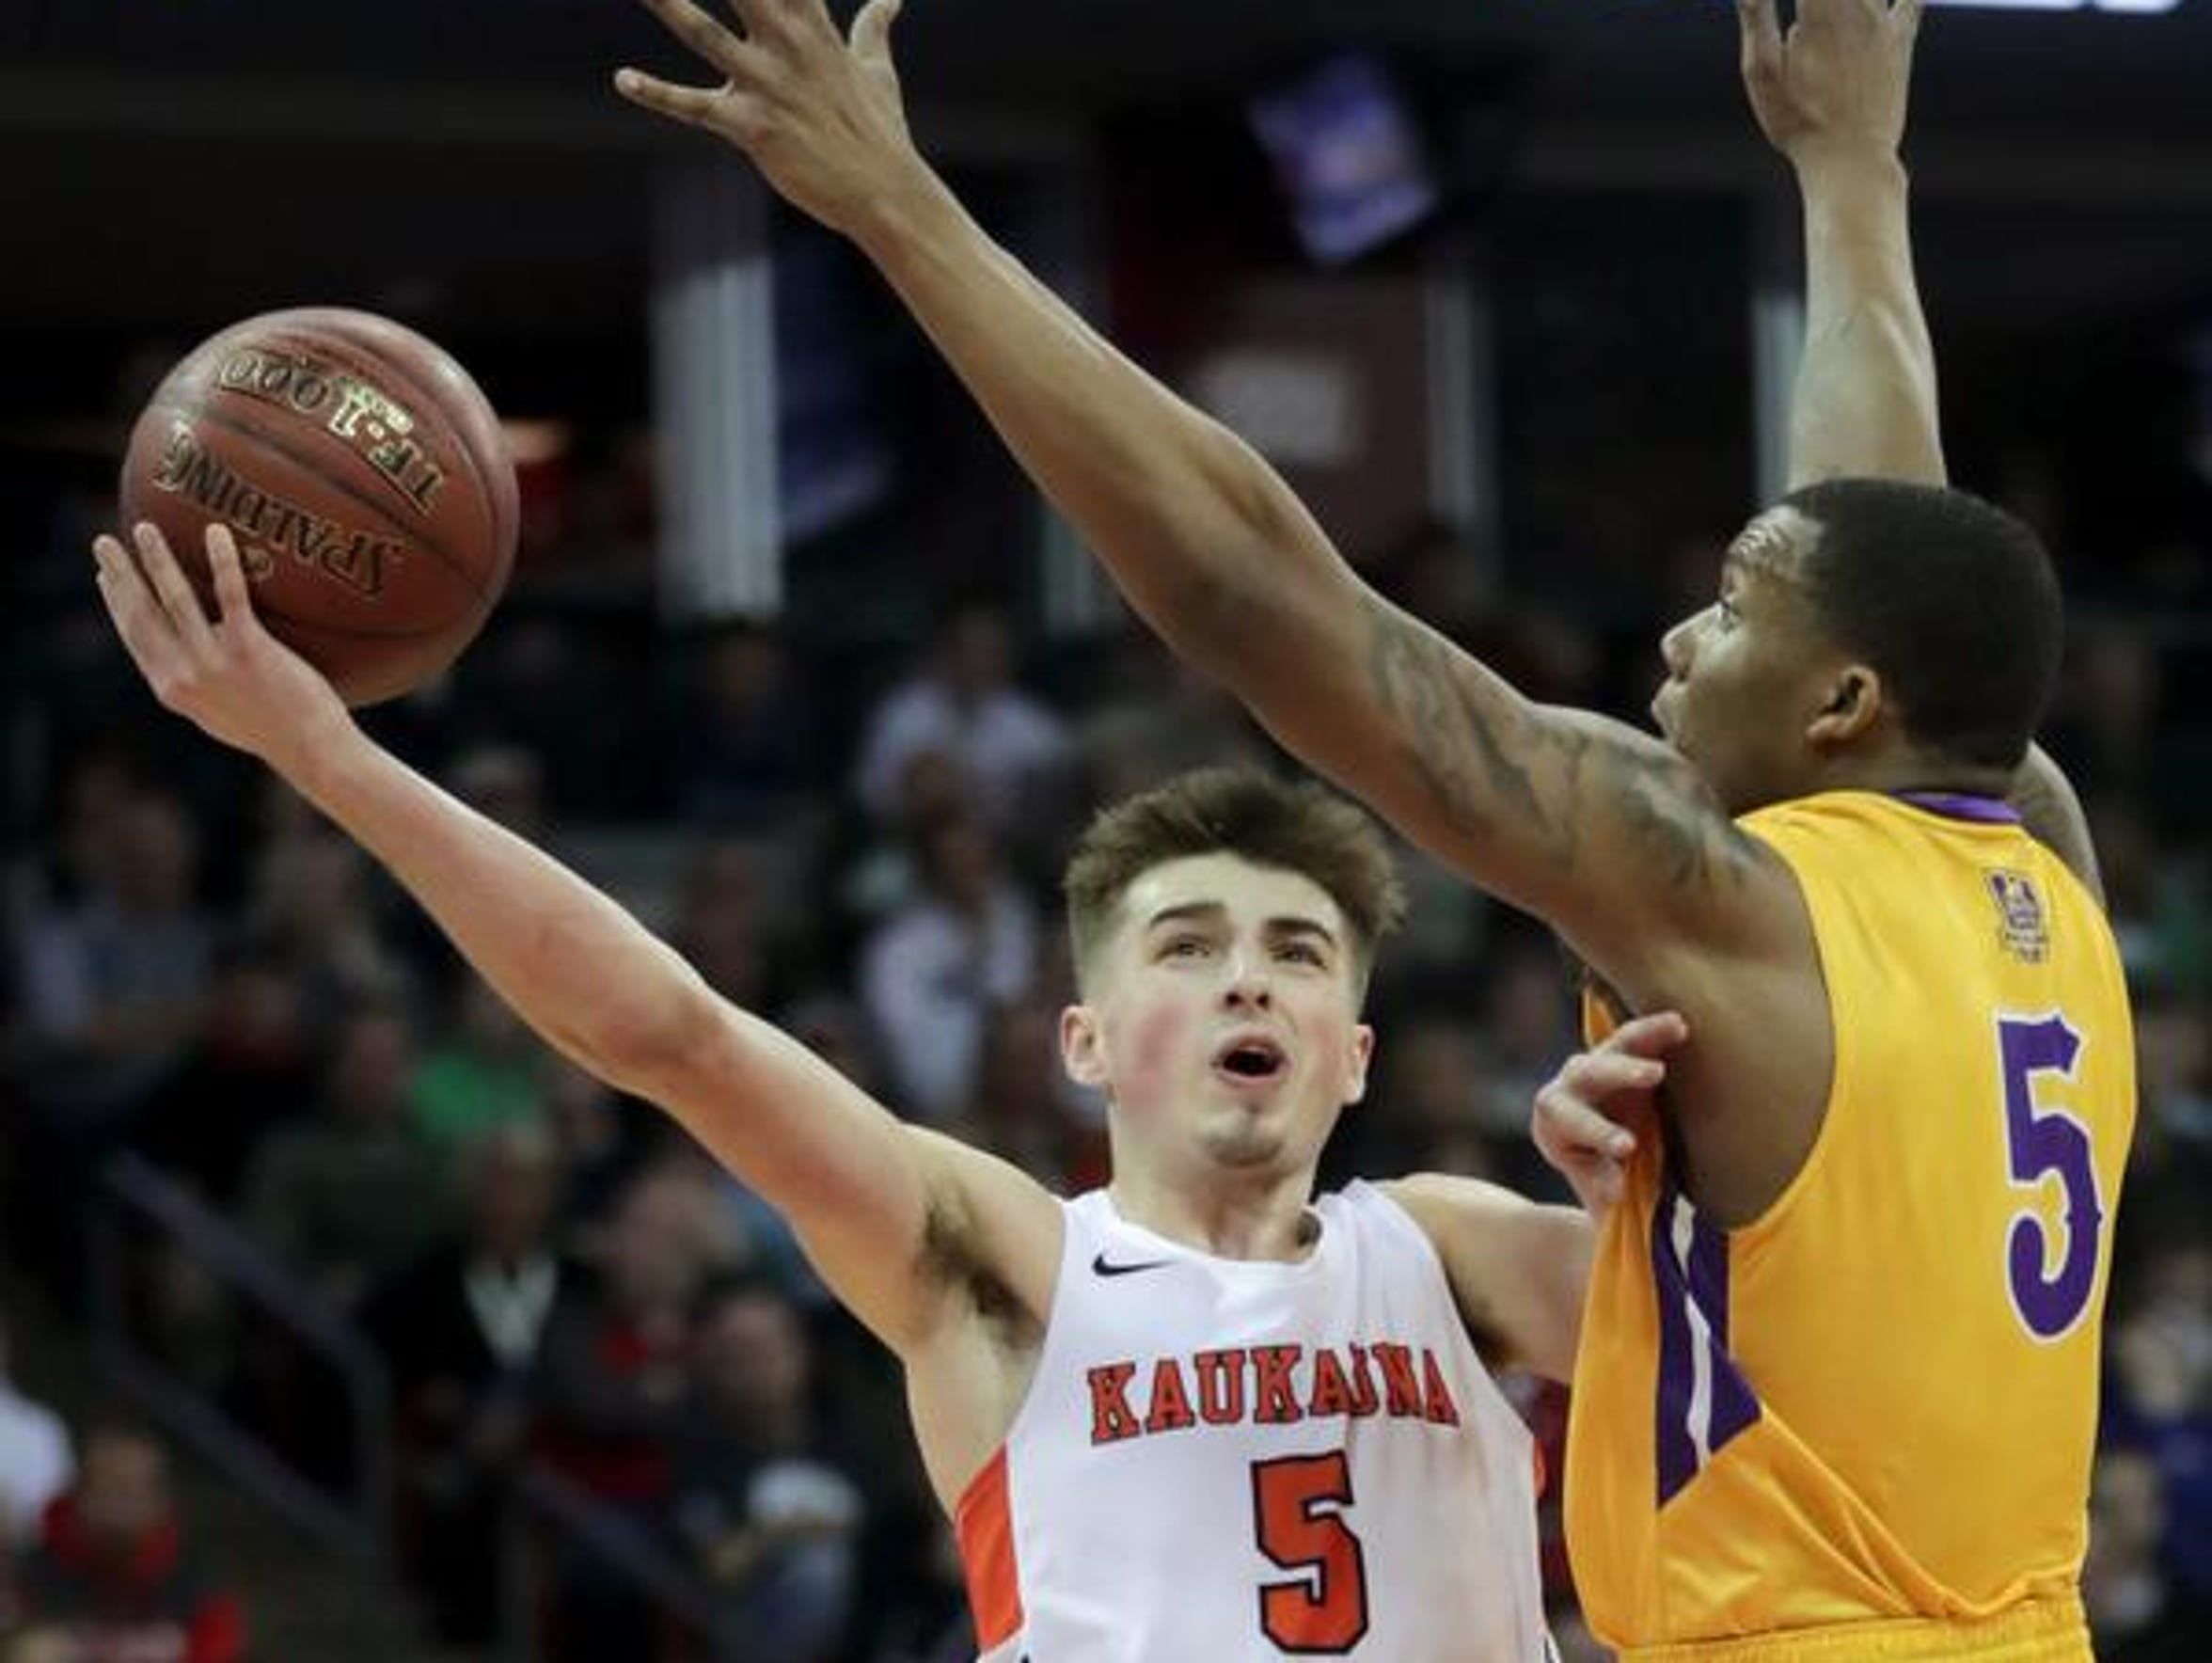 Kaukauna High School's Jordan McCabe goes up for a shot around Milwaukee Washington High School's Deontay Long during their WIAA Division 2 state championship game on Saturday, March 17, 2018, at the Kohl Center in Madison.